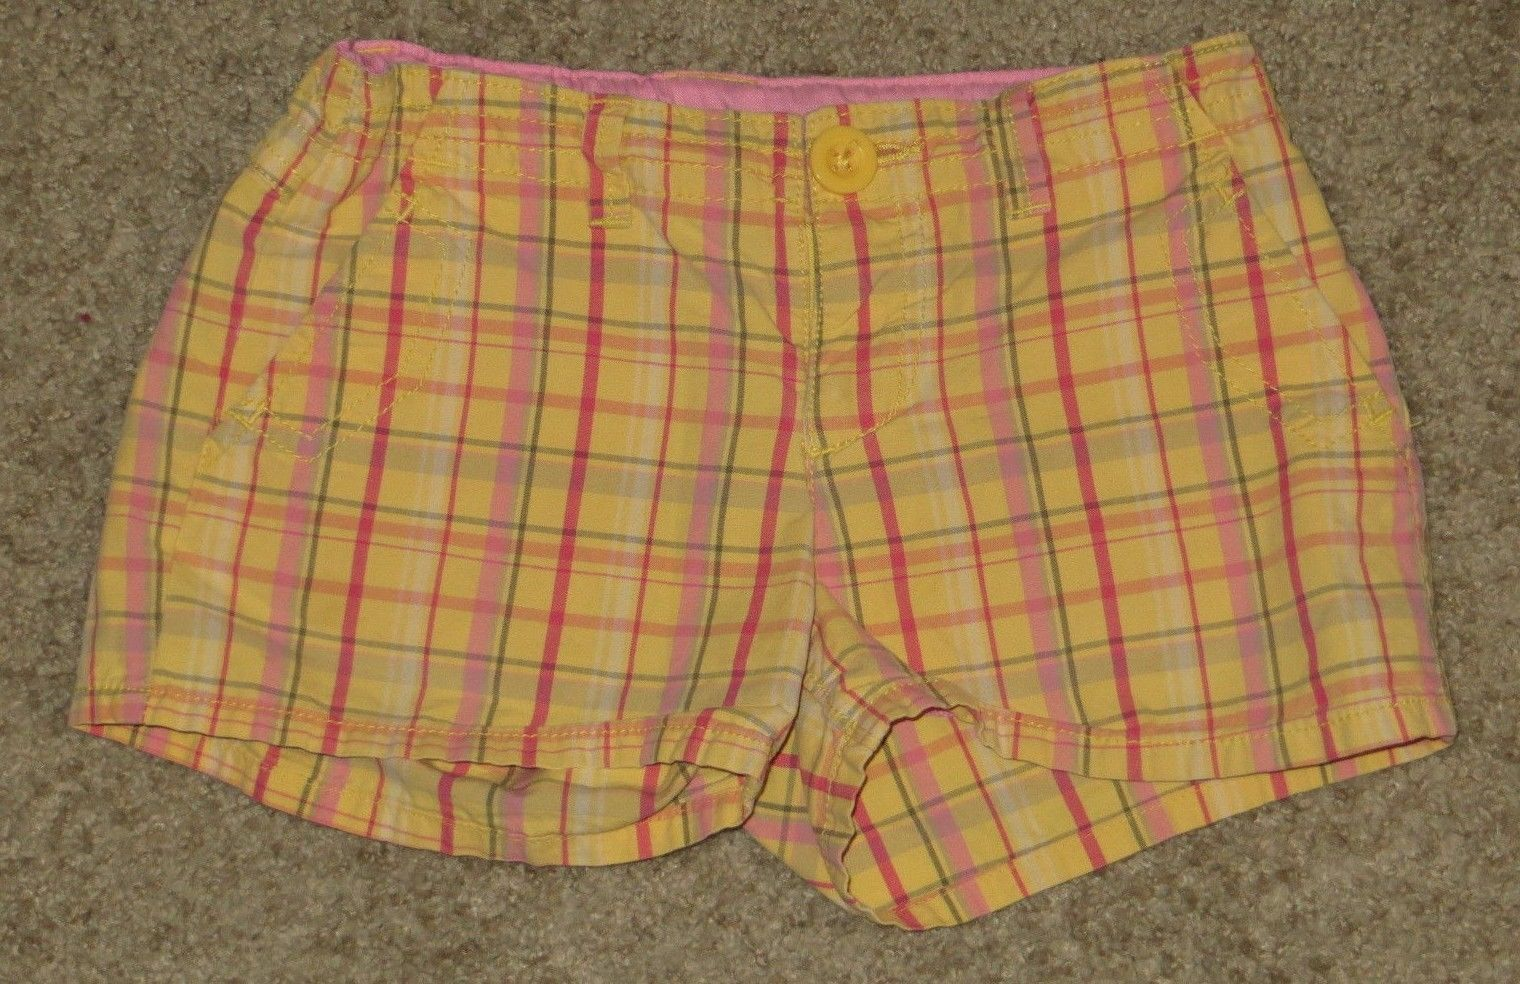 EUC Gap Kids Yellow Pink Green Plaid Shorts Size 8R 8 Regular image 1